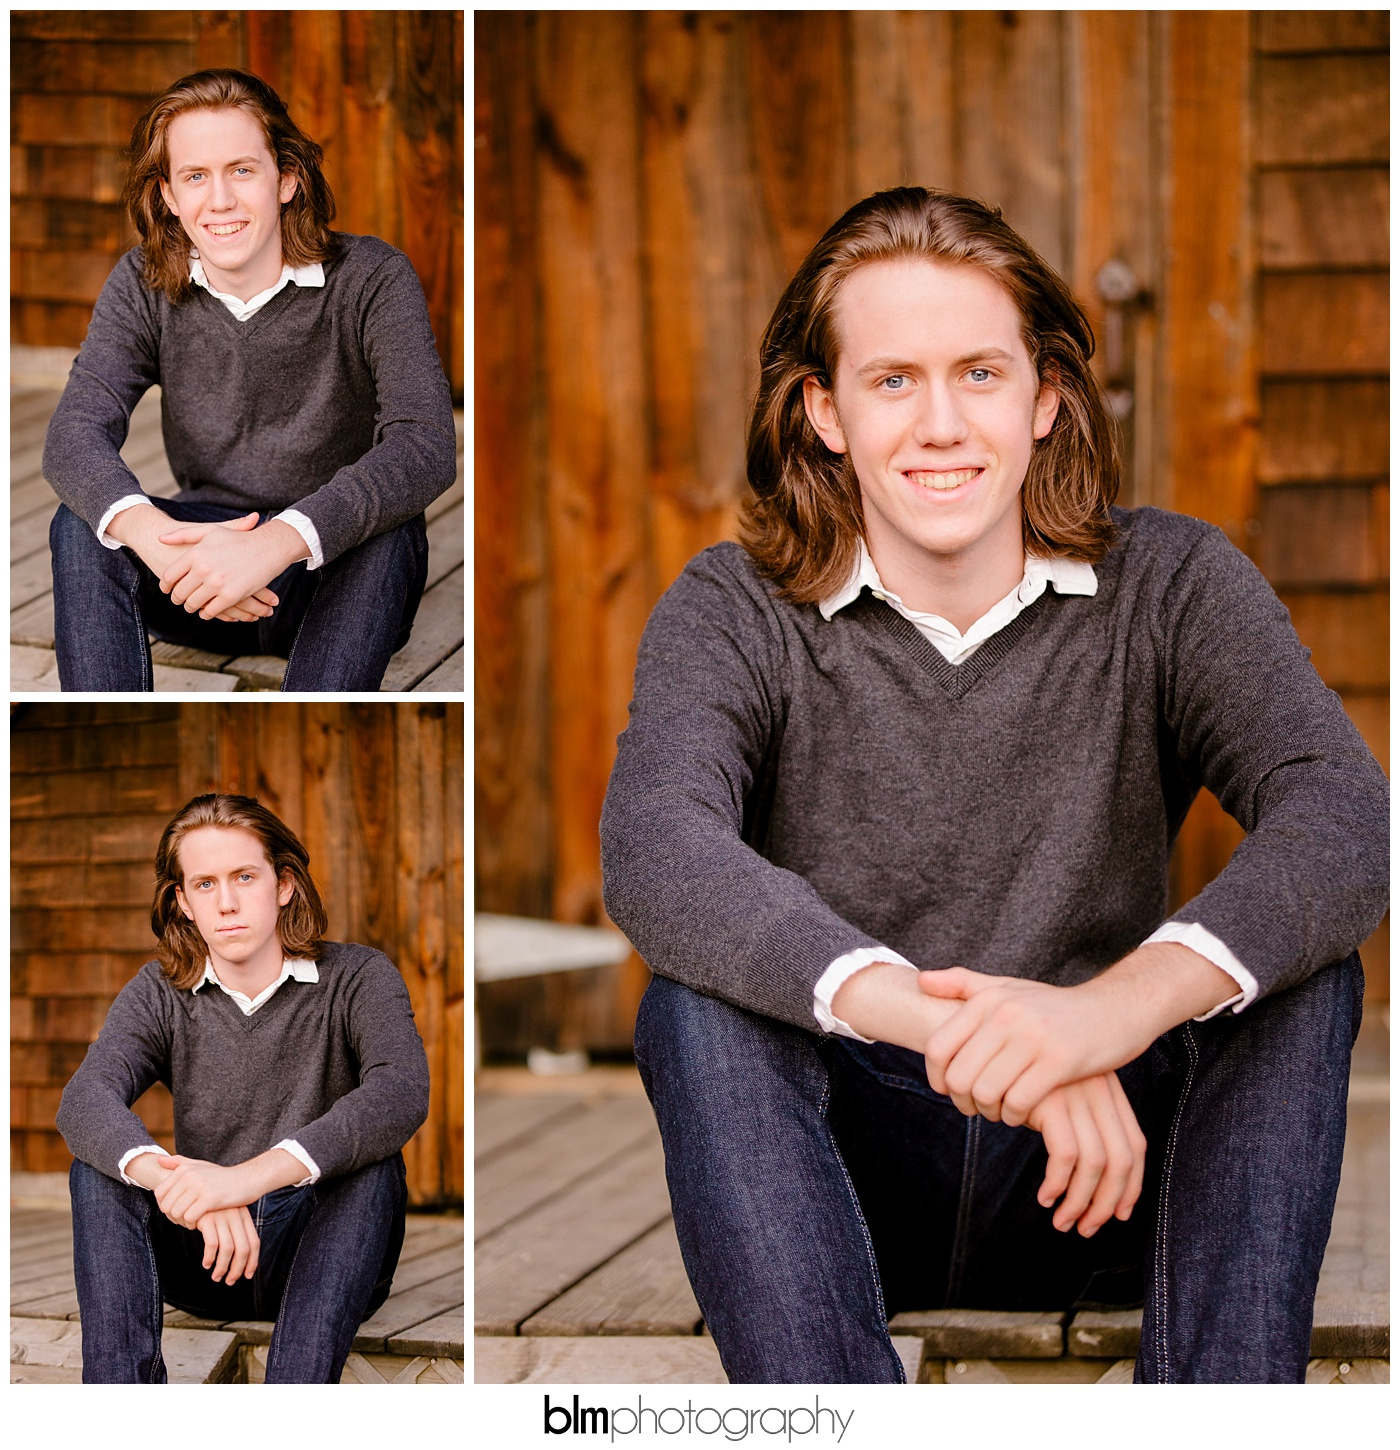 Ryan-Hoiriis_Senior-Portraits_092116-8628.jpg